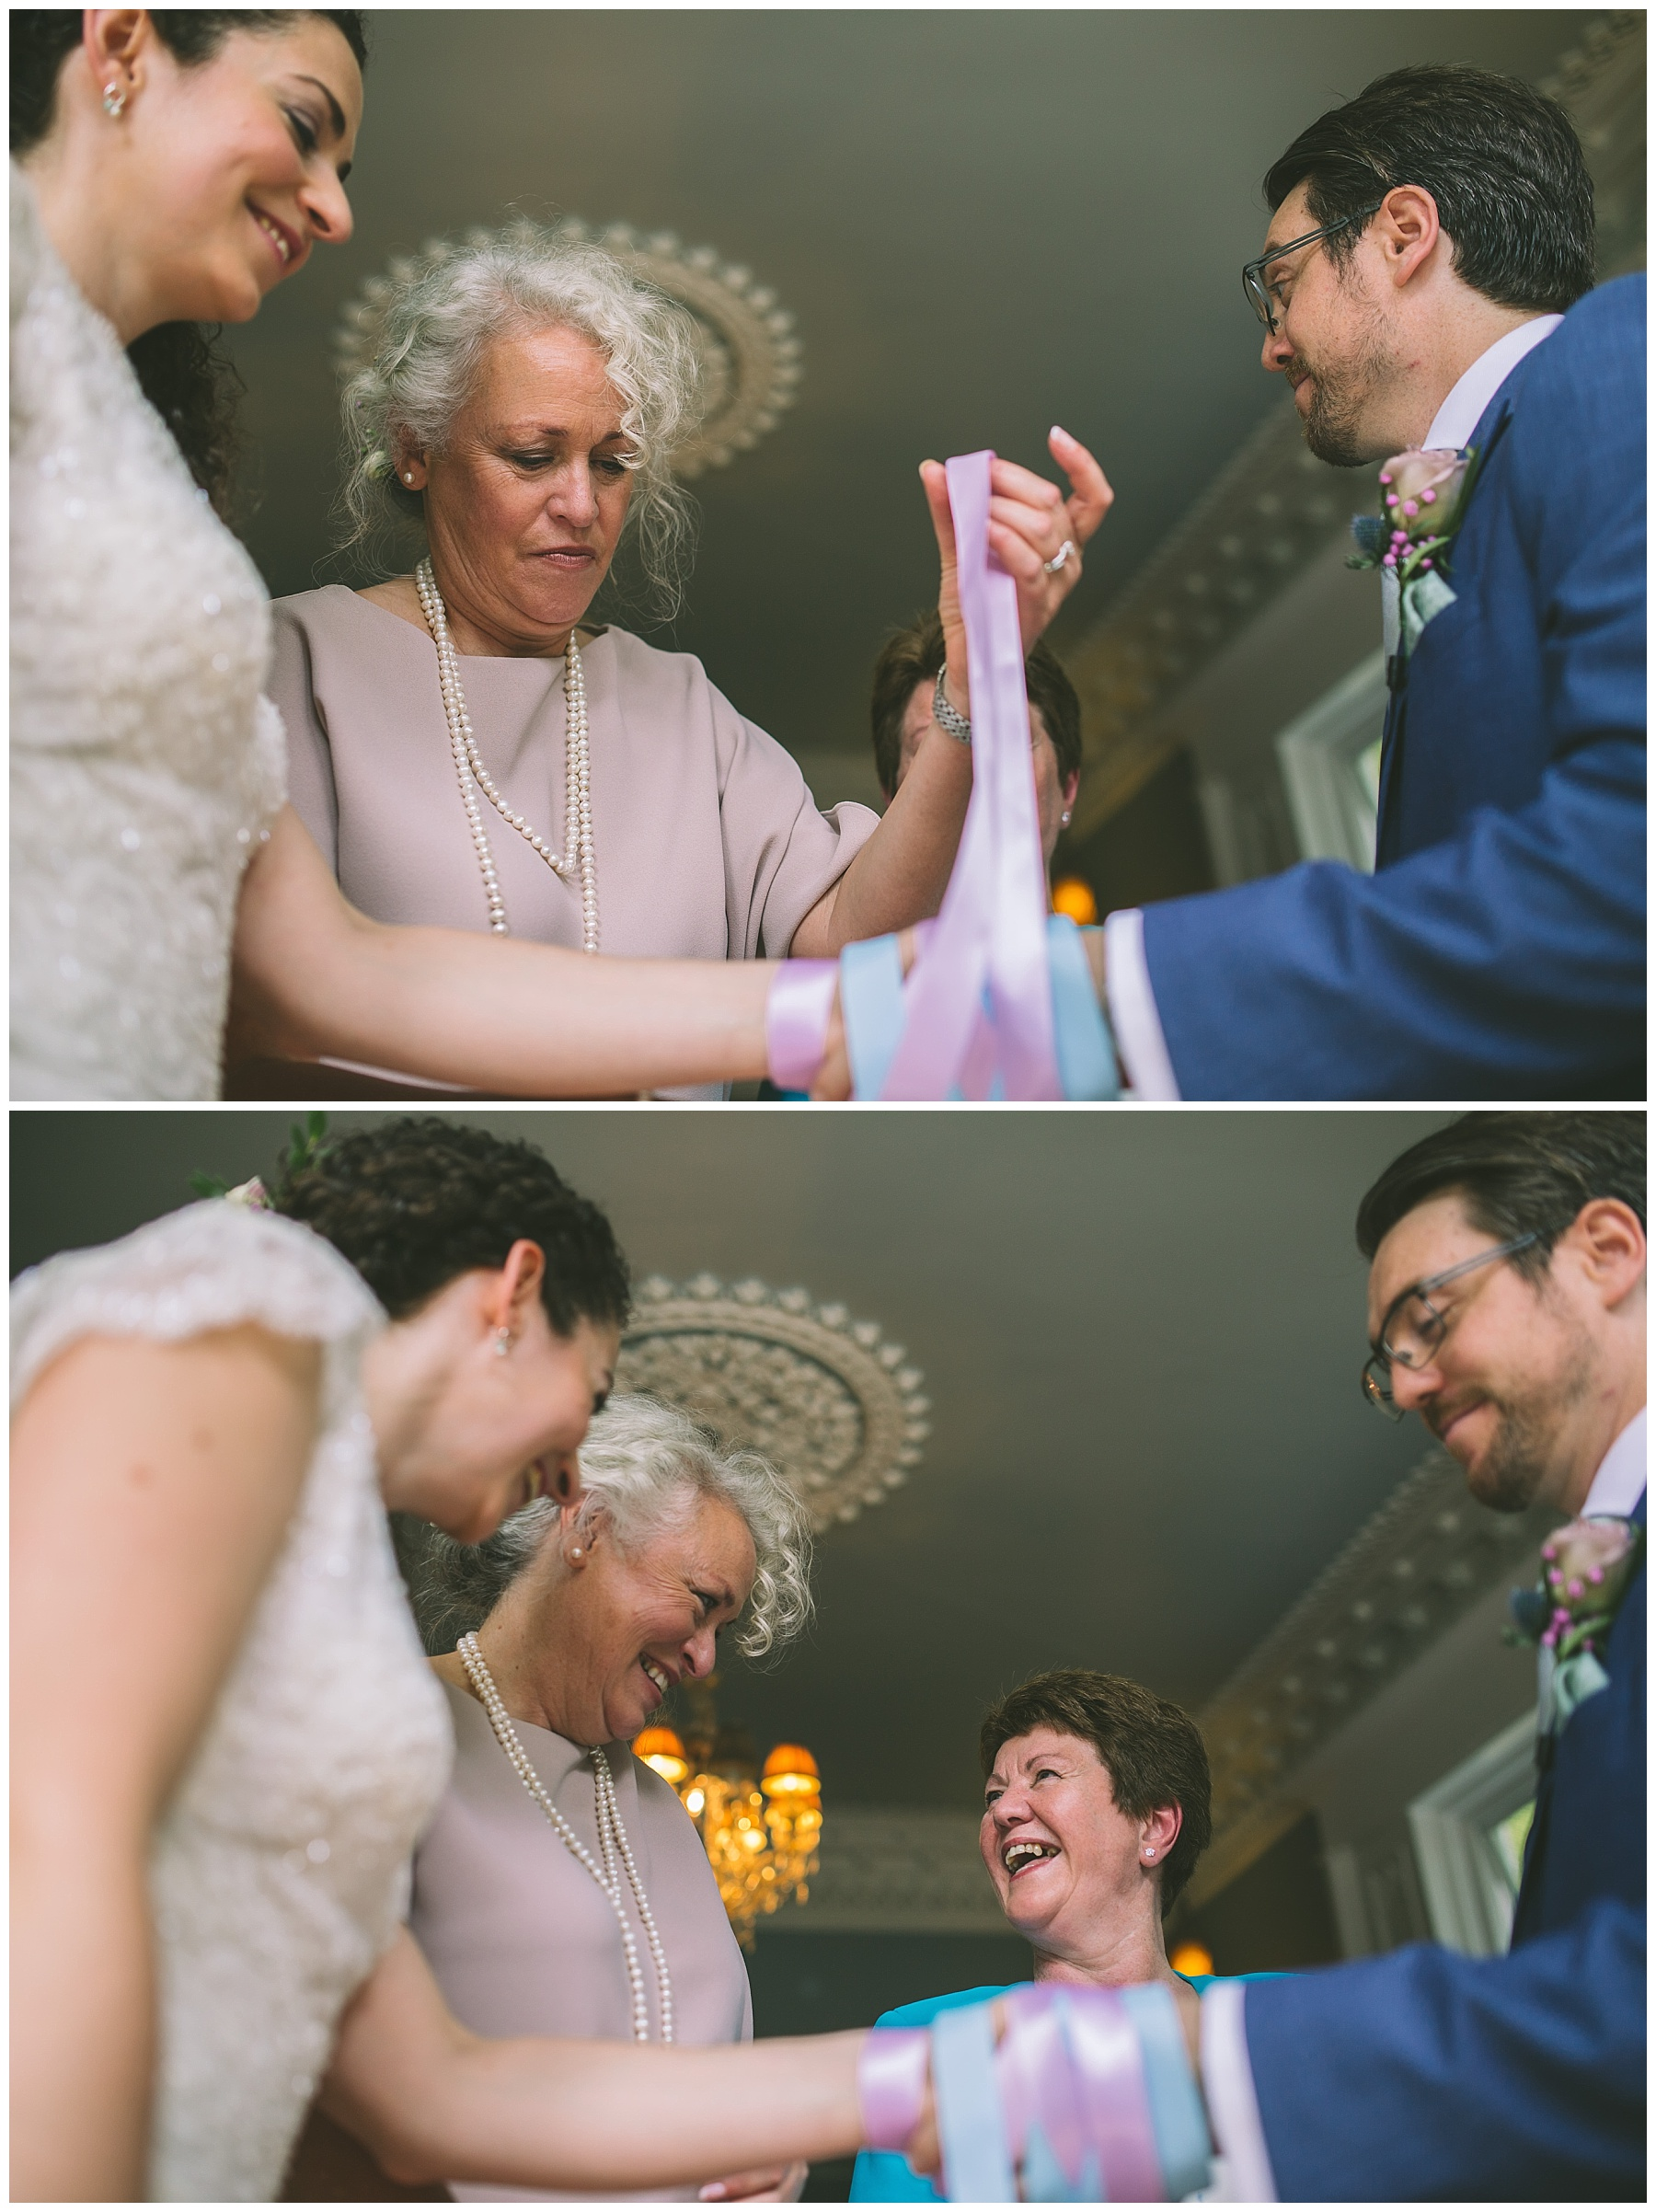 Mothers of the bride and groom bind the couples hands in a traditional handfasting